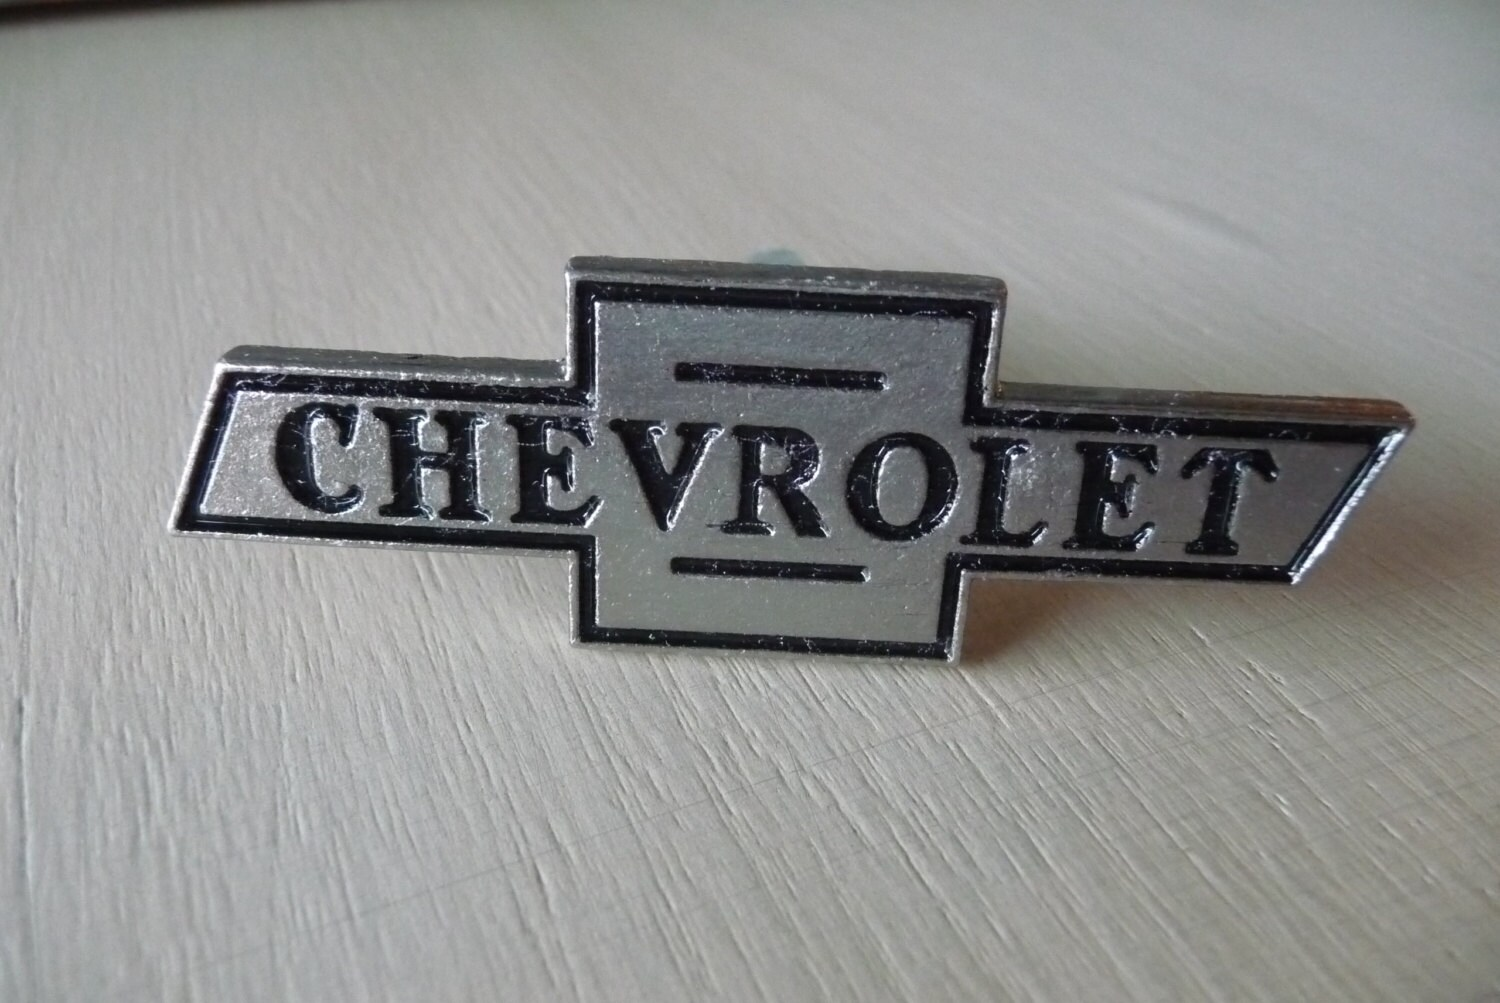 3 Quot Chrome Chevy Chevrolet Knob Cabinet Drawer Pull